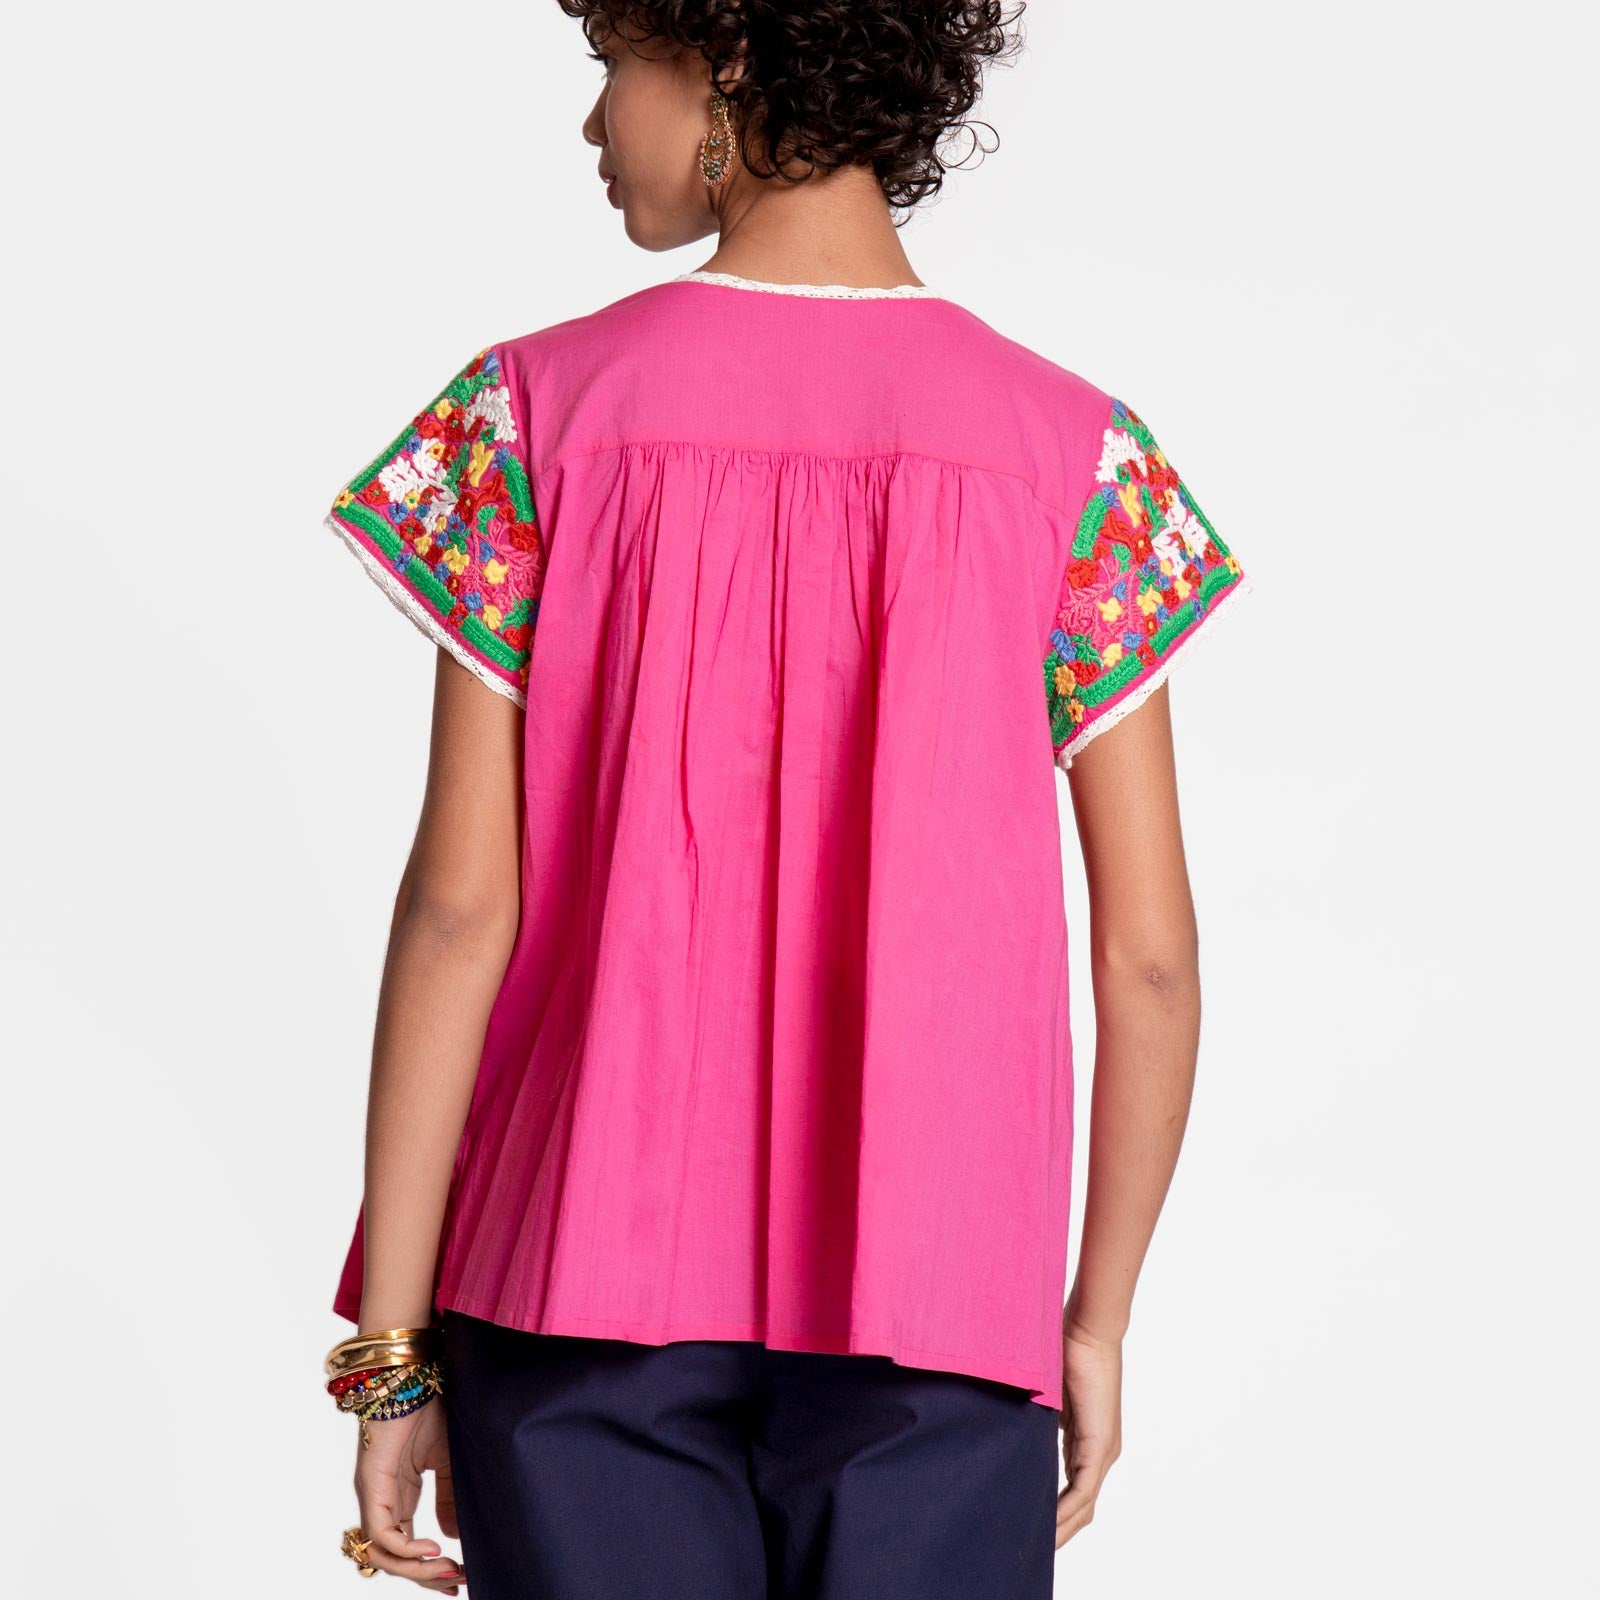 Embroidered Flower Top Pink